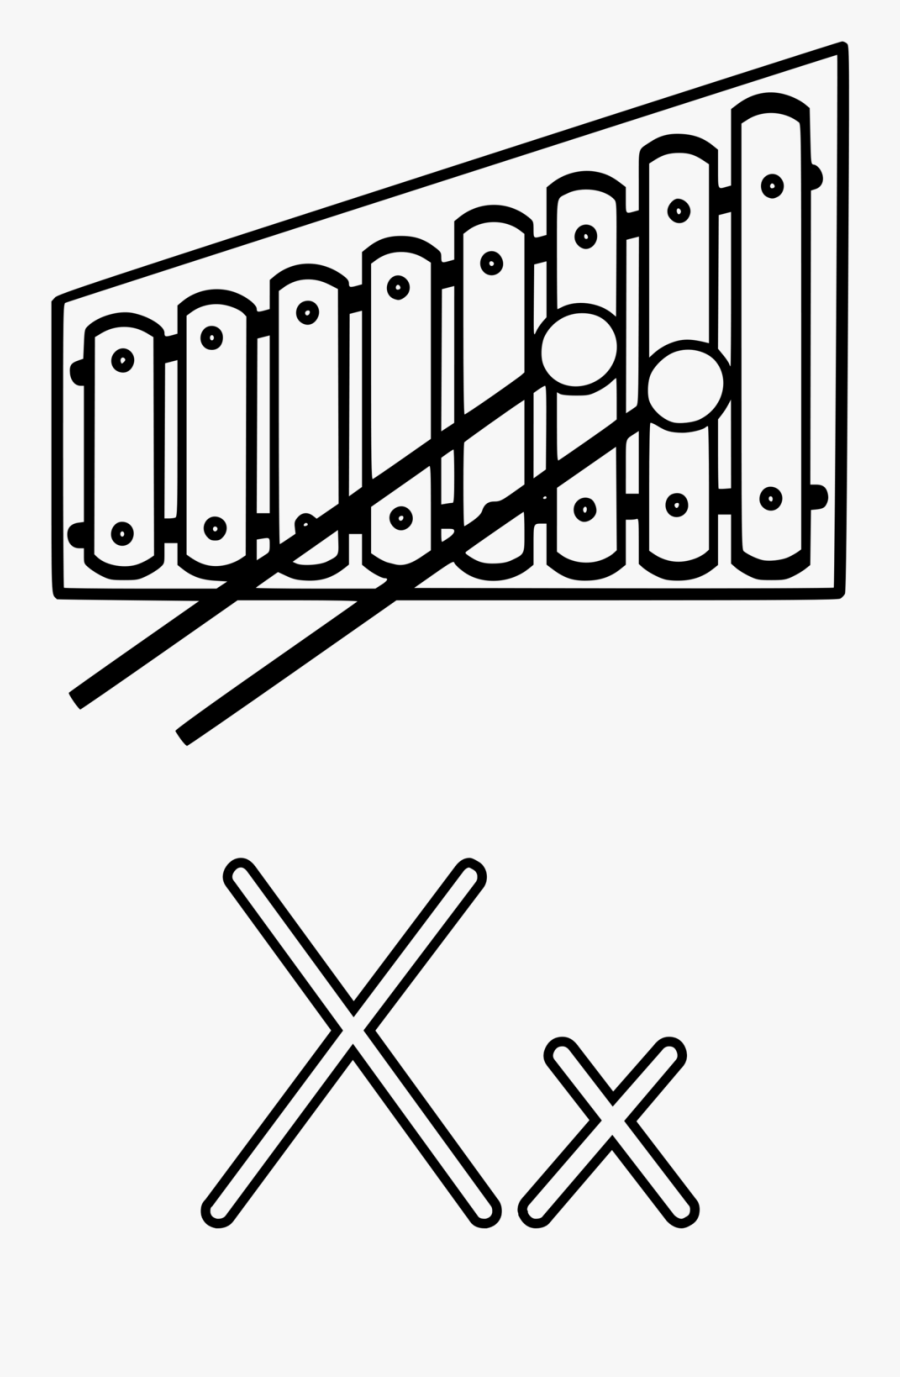 Free Stock Photo Illustration - Xylophone Clipart Black And White, Transparent Clipart